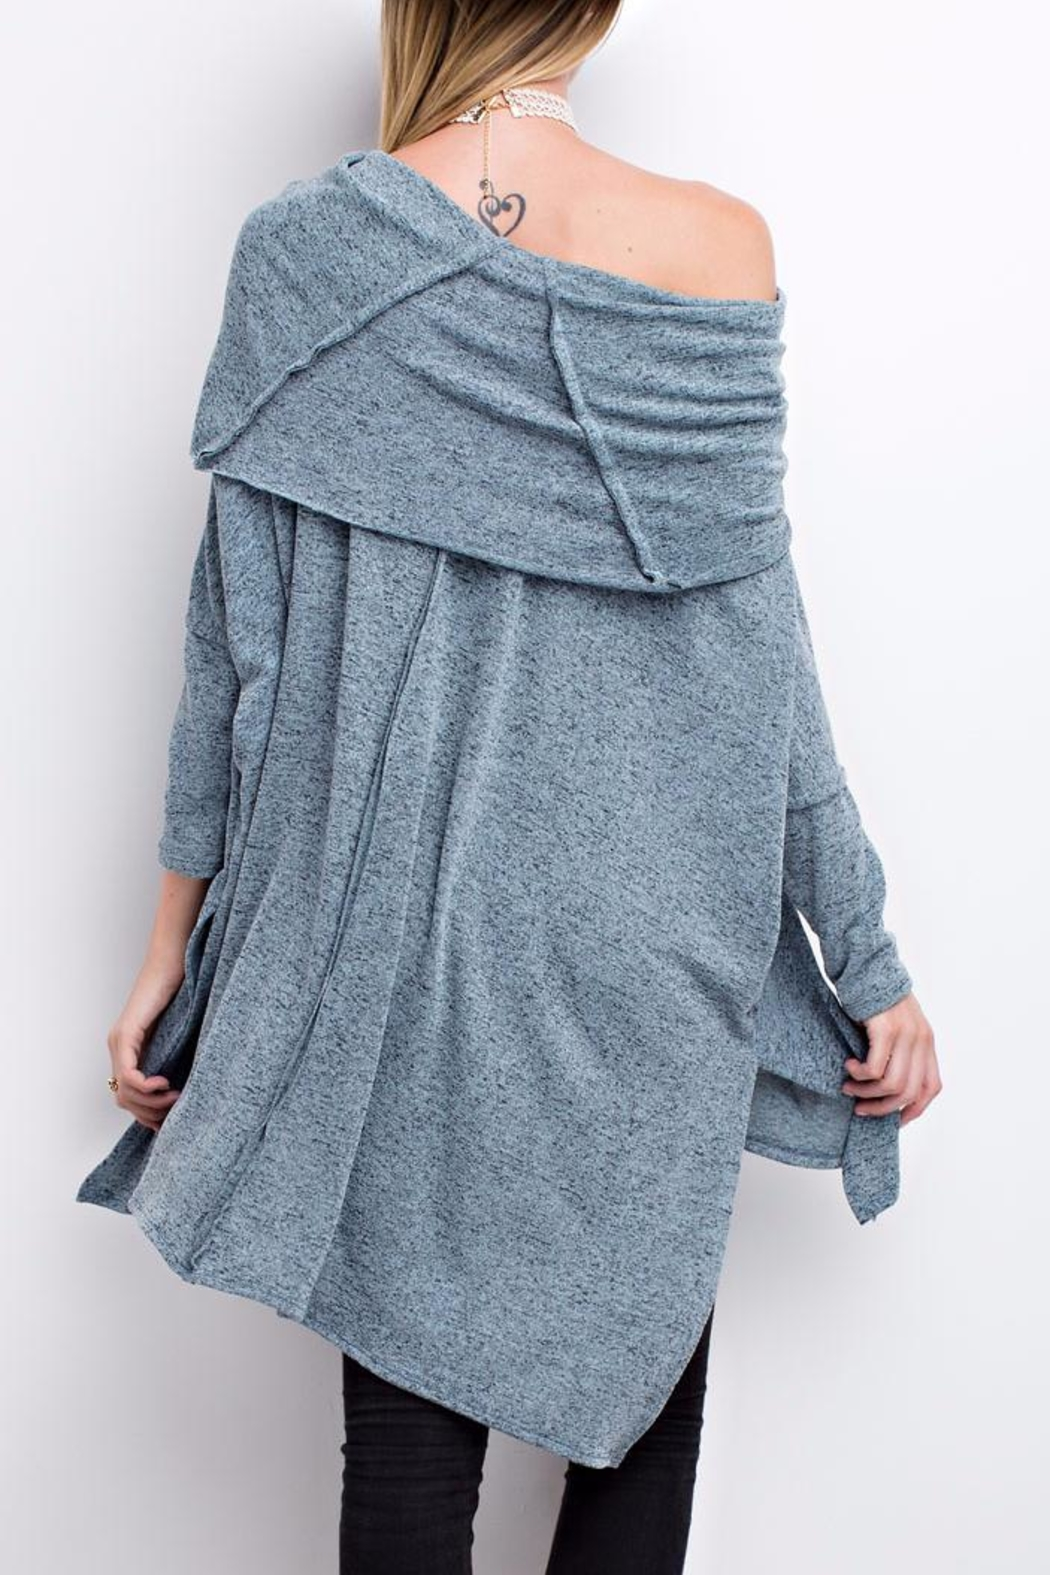 People Outfitter Tequila Swing Top - Front Full Image